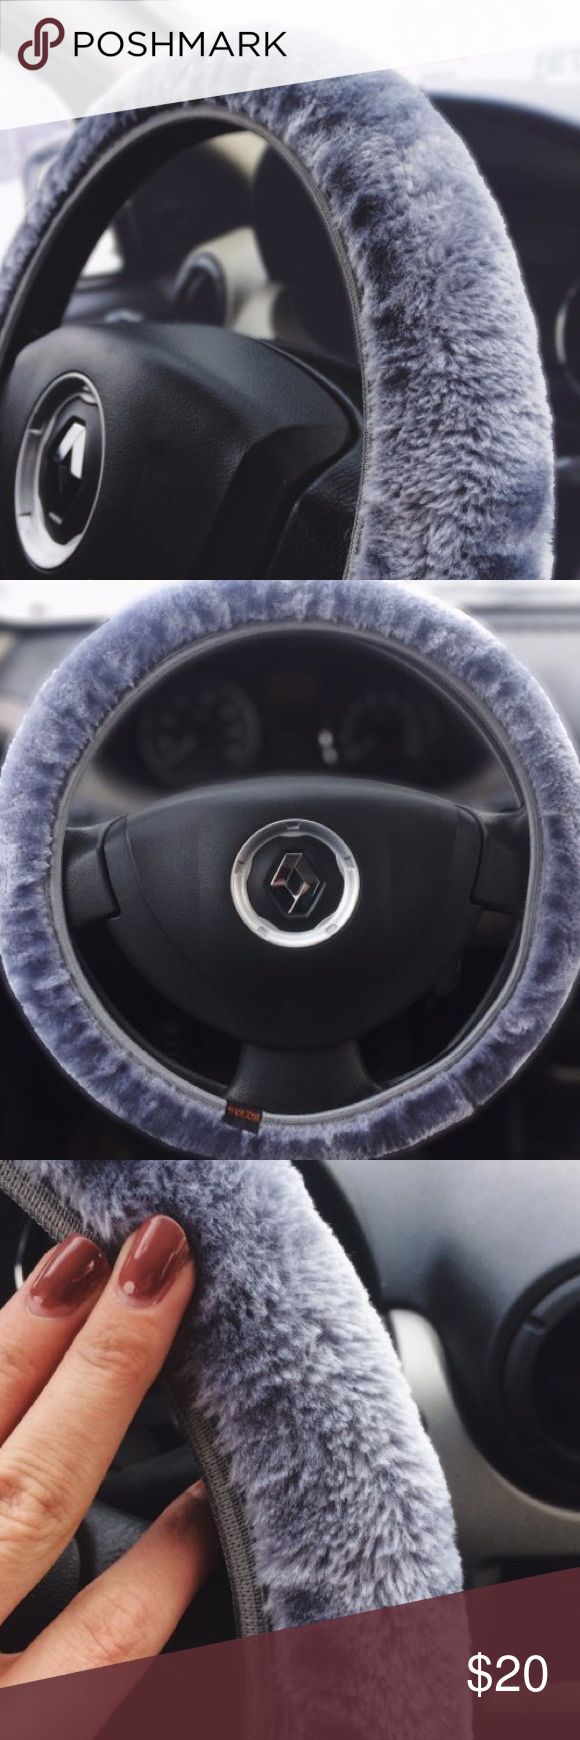 Faux Fur Steering Wheel Cover Cute new faux fur steering wheel cover , cute gift idea! Accessories